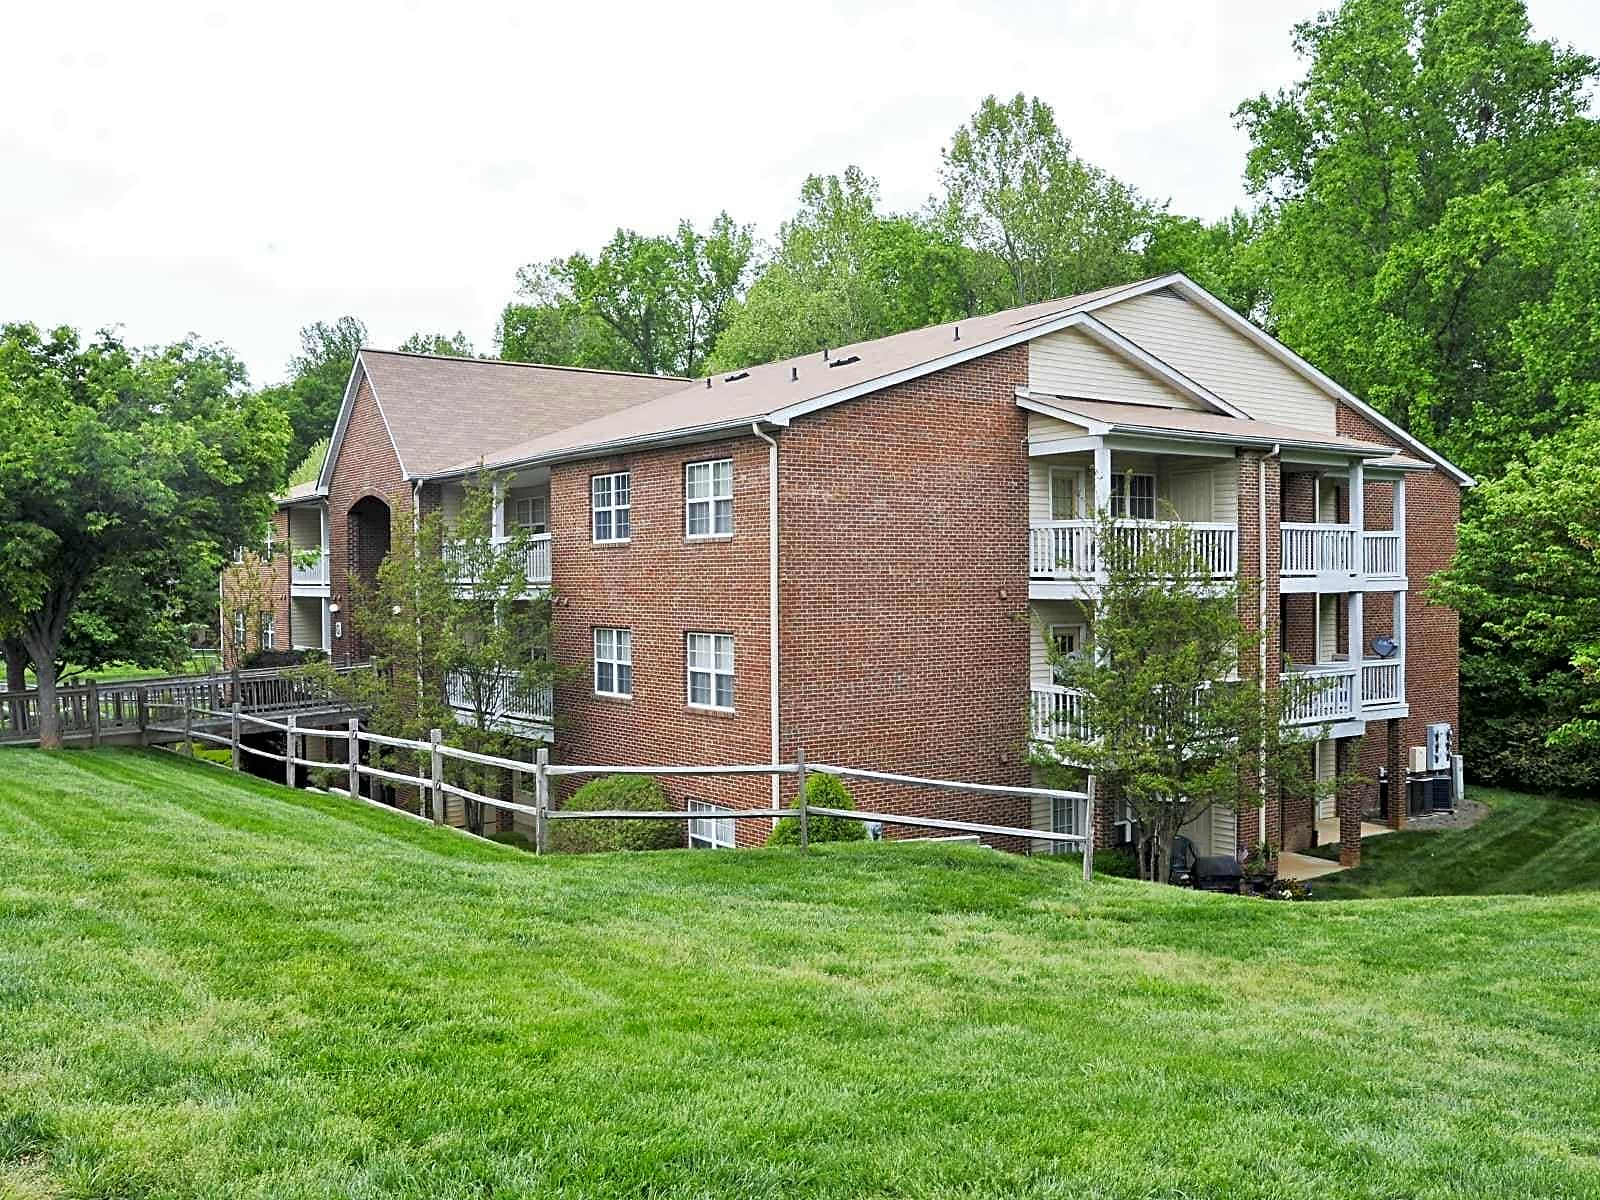 Apartments Near Guilford Cardinal Apartments for Guilford College Students in Greensboro, NC